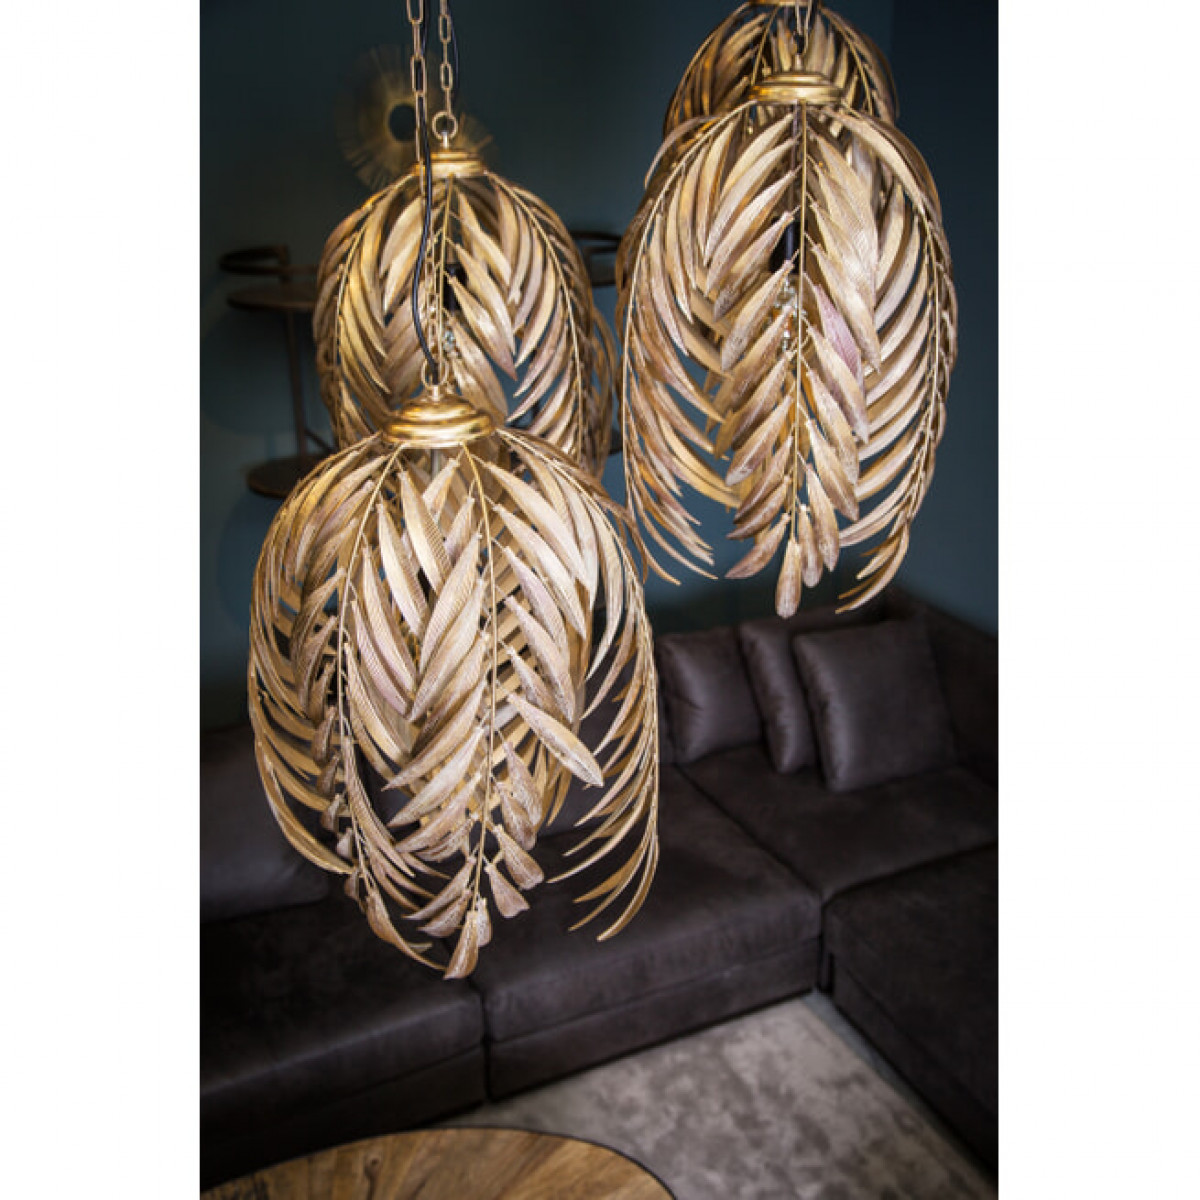 PTMD Mea large gold hanglamp palm